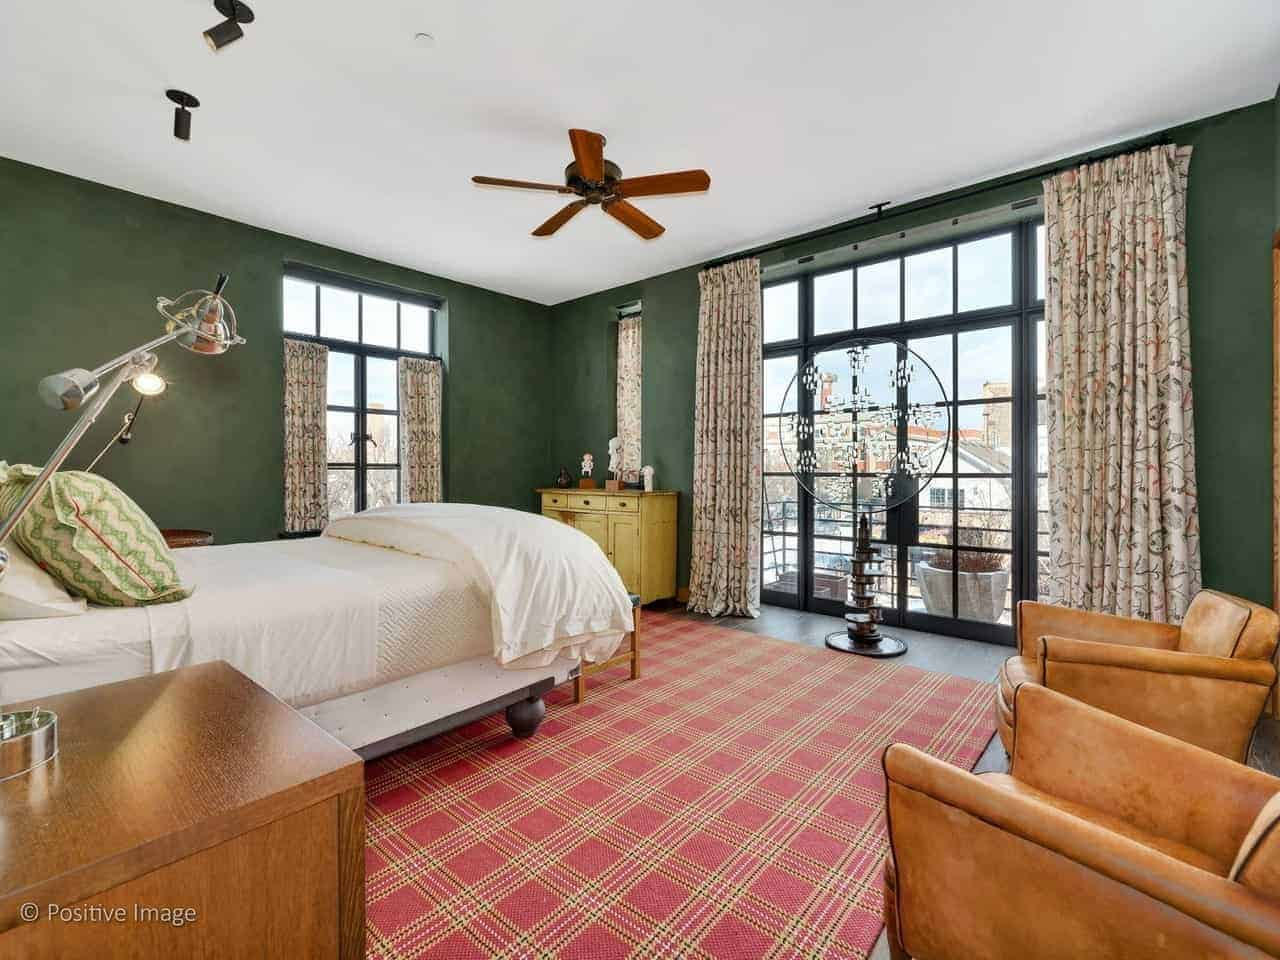 This industrial-style master bedroom has dark green walls that are contrasted by the large French window and French glass doors. These are paired with floral curtains that pairs with the red plaid area rug to bring a dash of color to the bedroom.